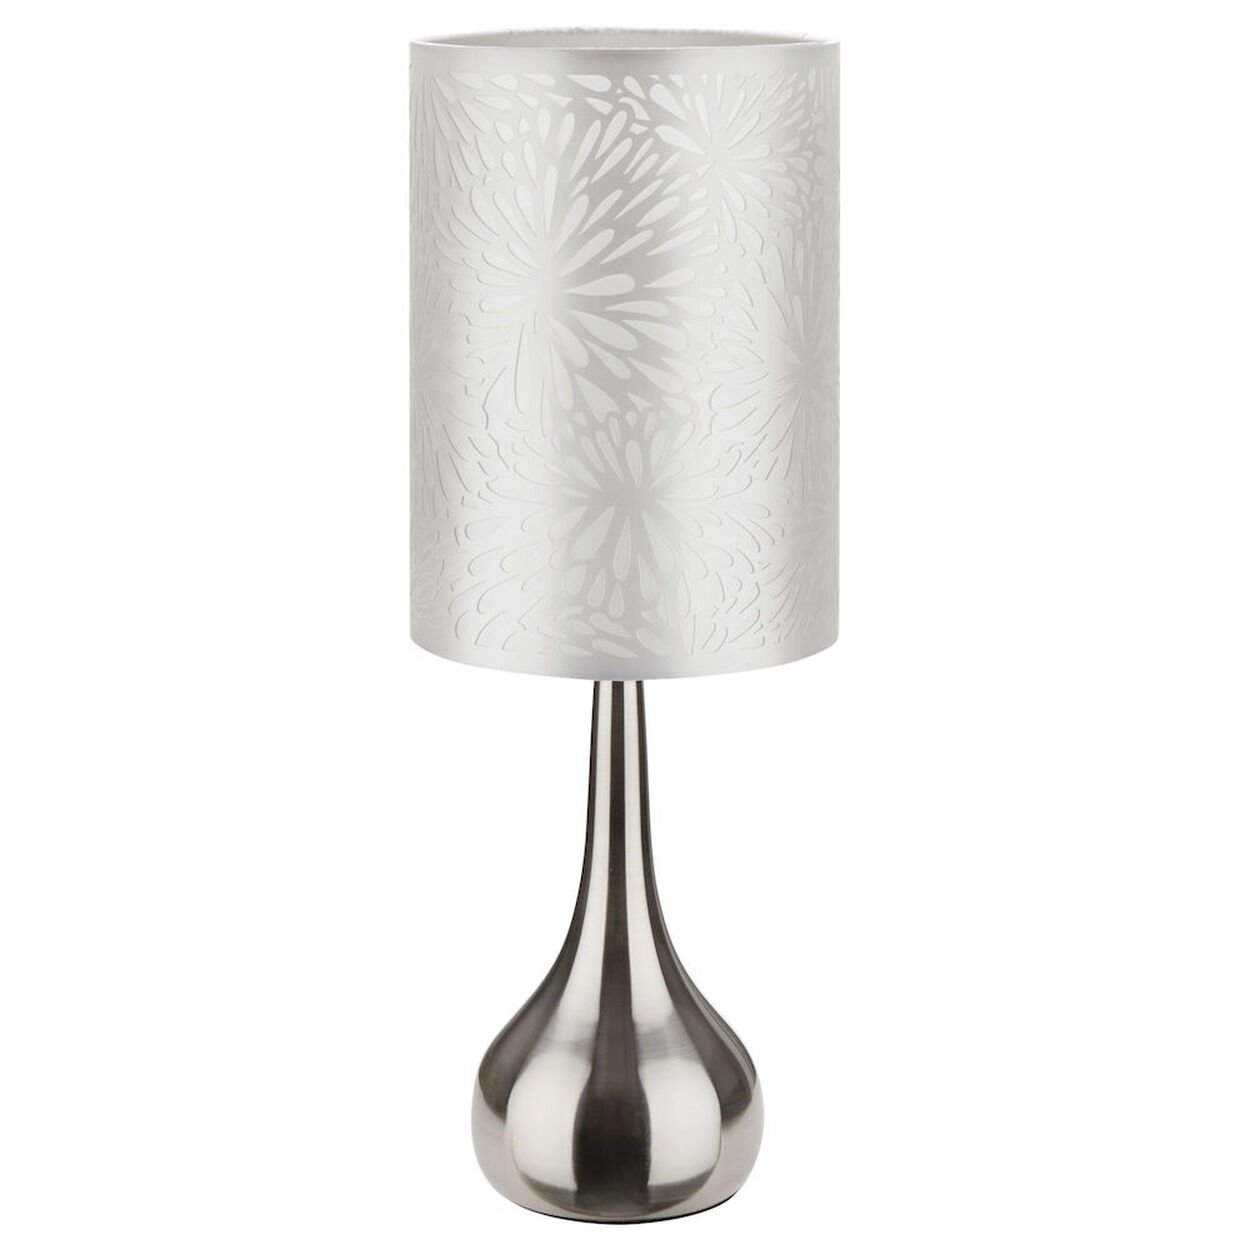 Table Lamp with Floral Cut-Out Shade